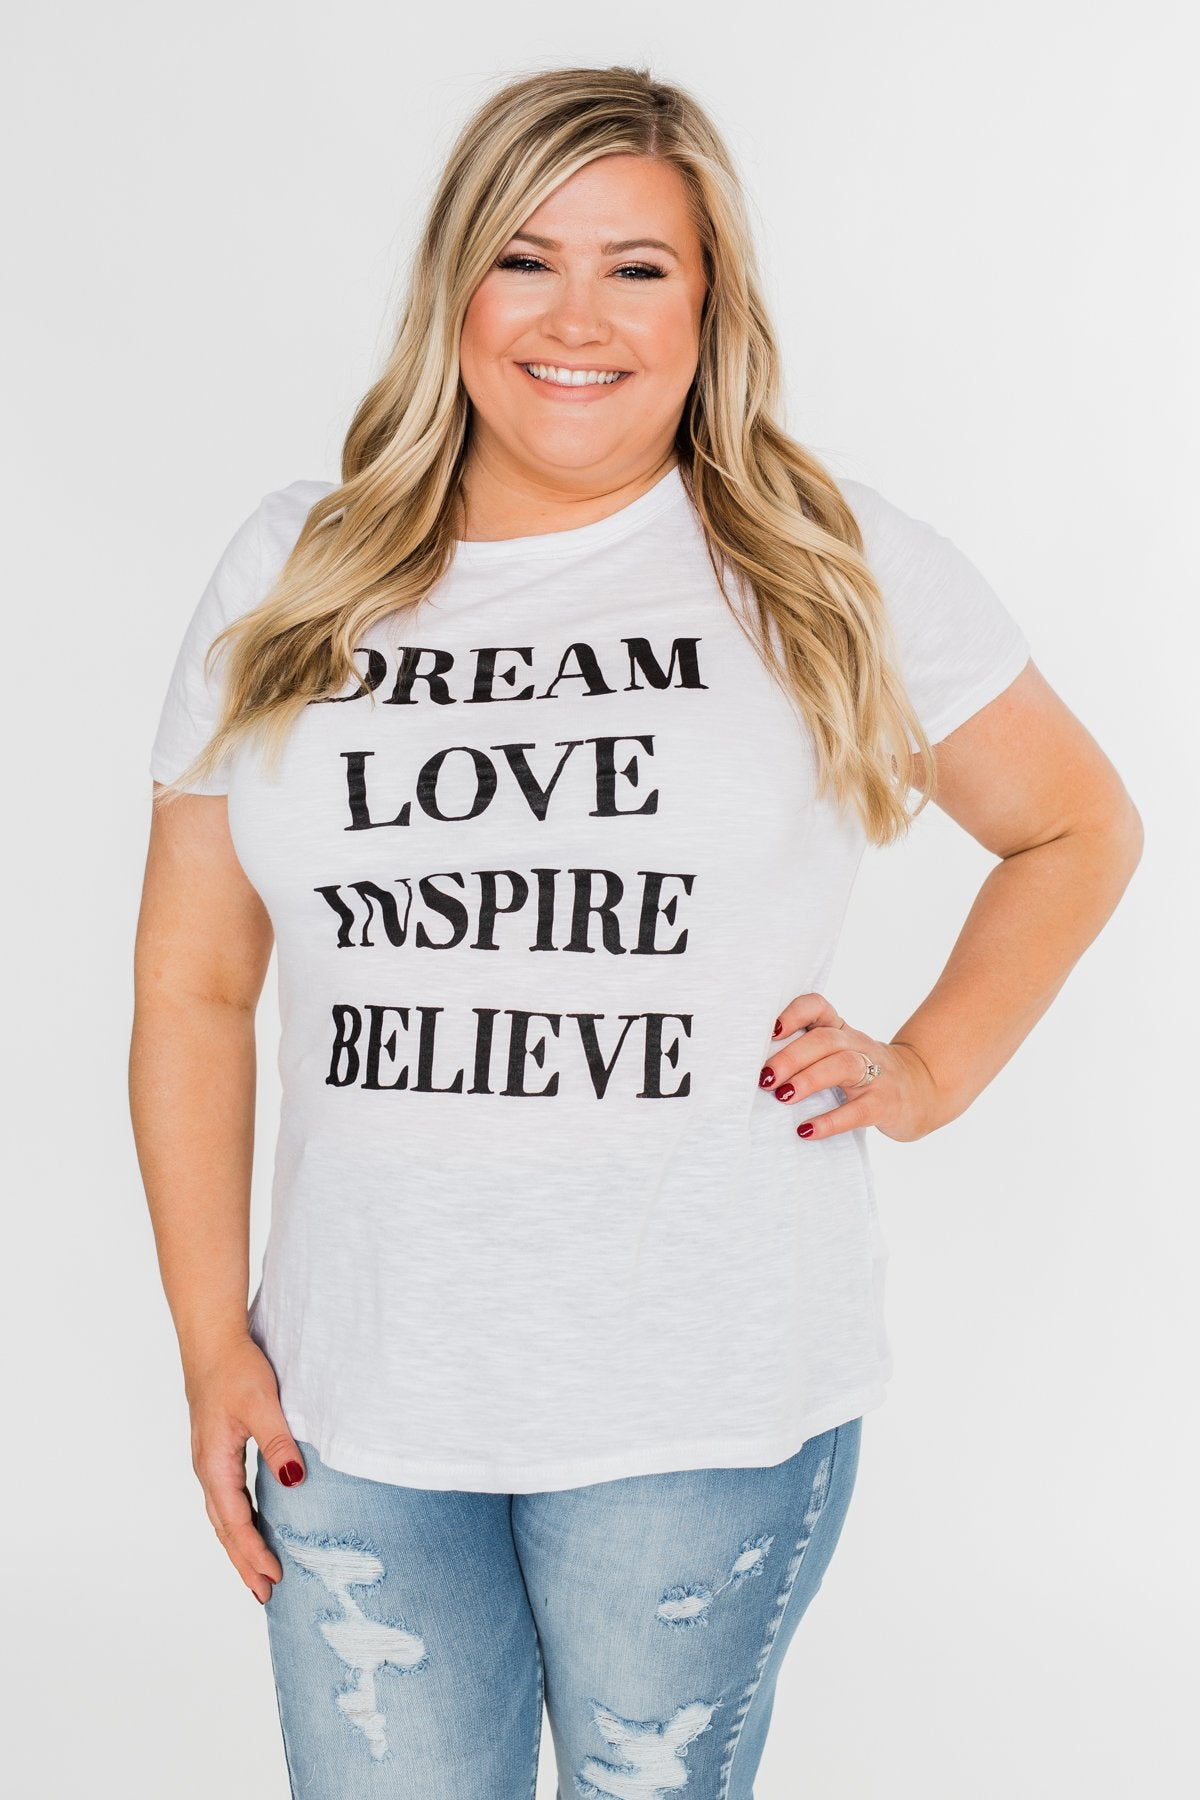 Dream, Love, Inspire, Believe Graphic Tee- White